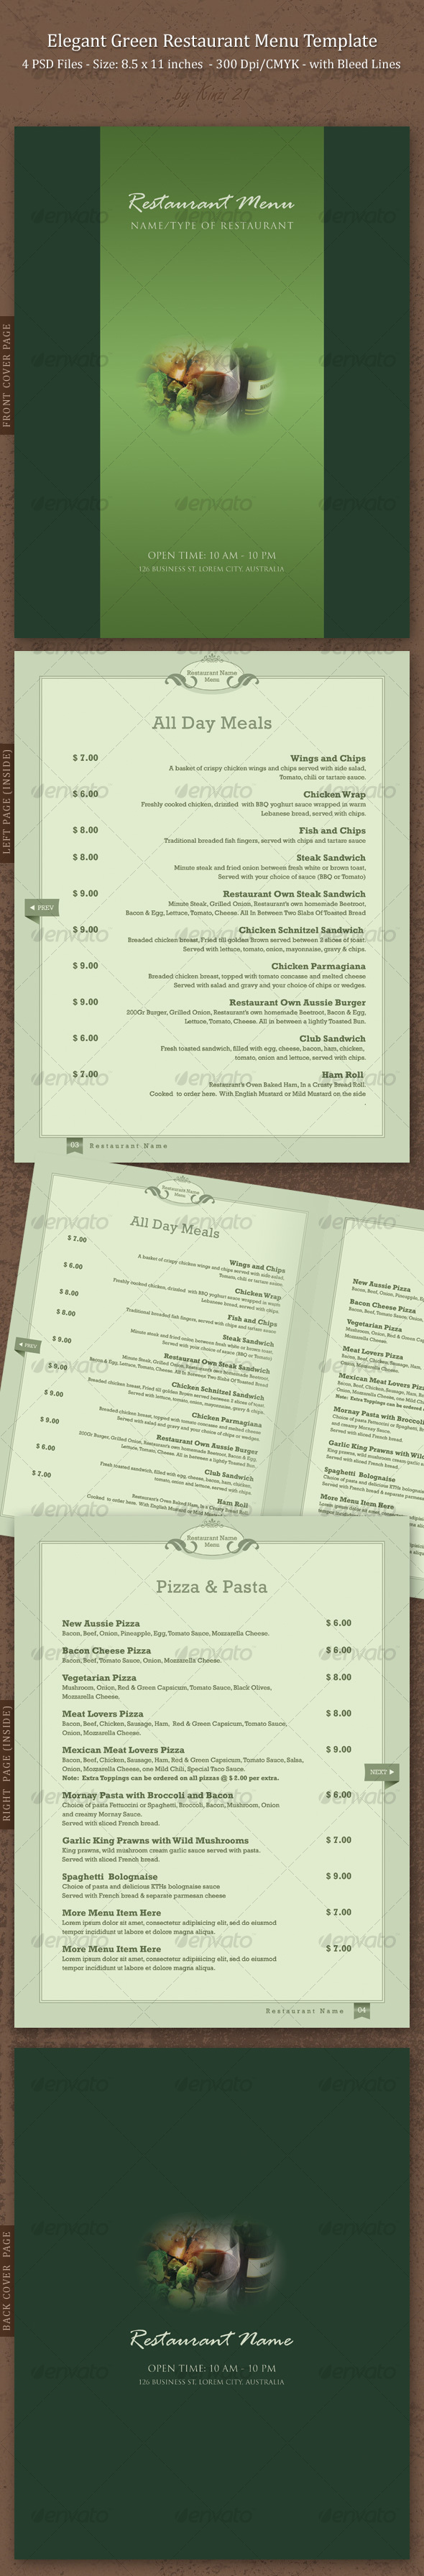 Elegant Green Restaurant Menu Template - Food Menus Print Templates